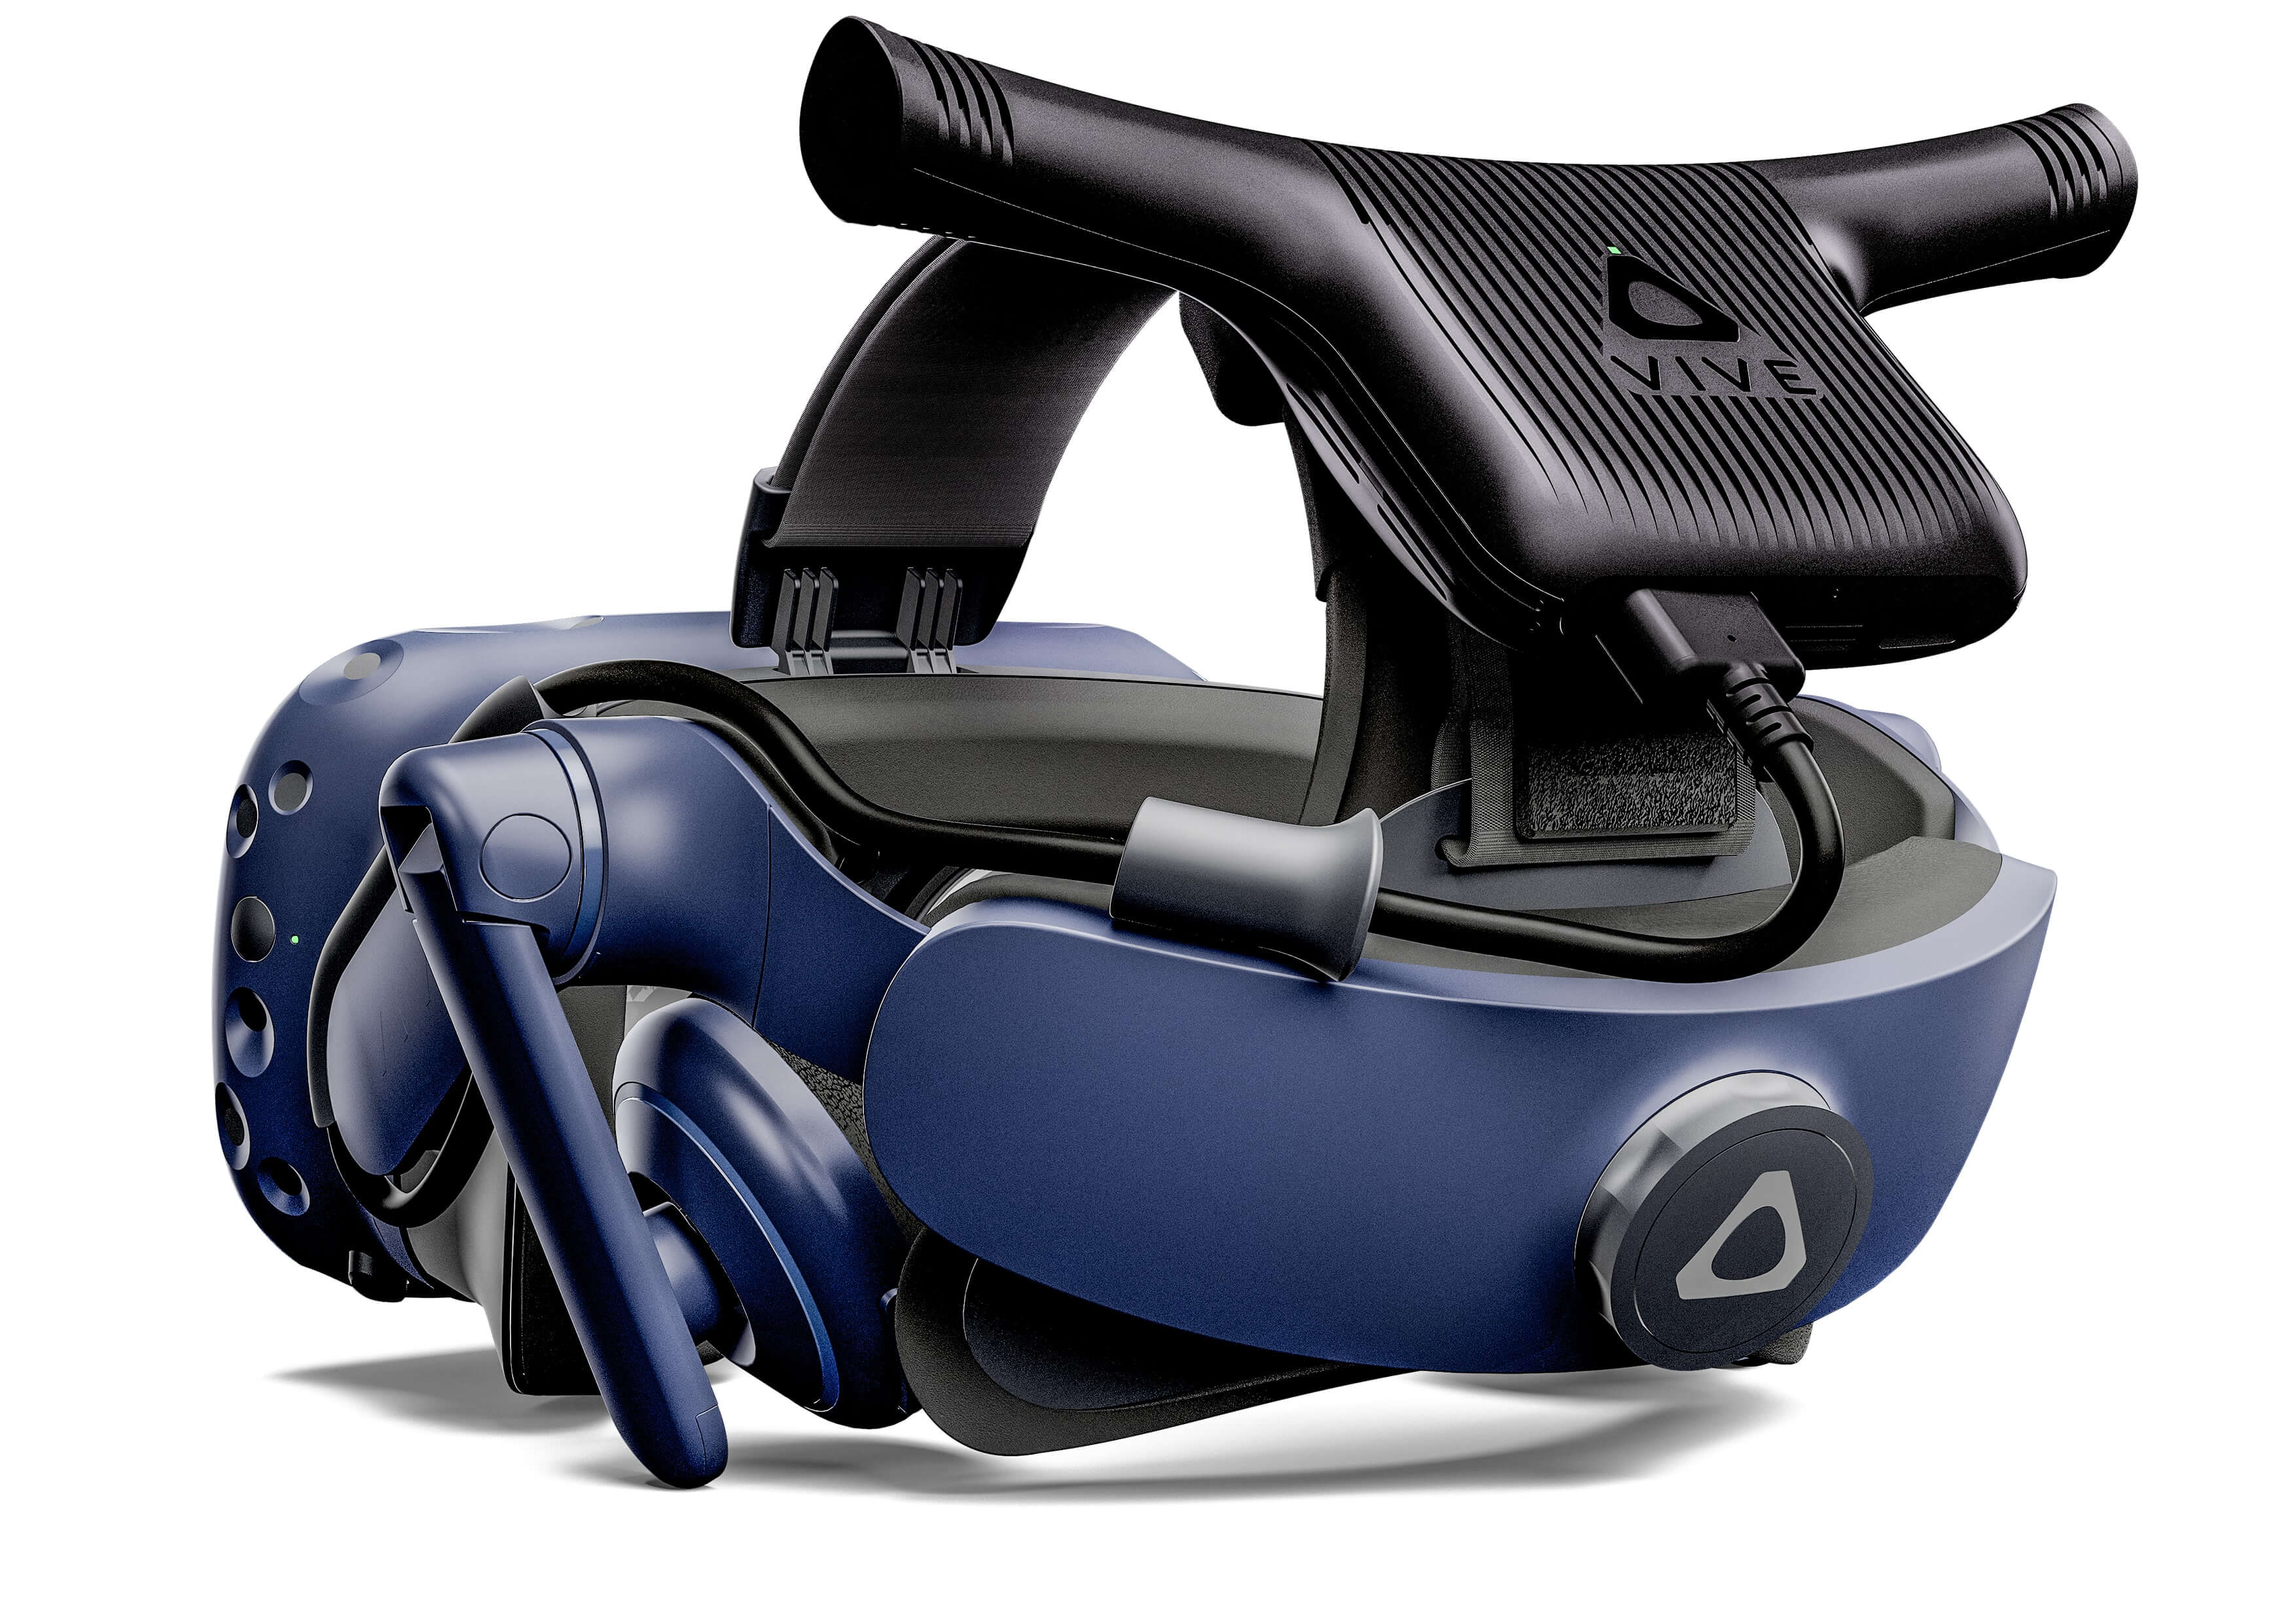 Fig. 3: The wireless adaptor for the Vive Pro removes the need for tethering by wirelessly connecting the headset to the computer [5].